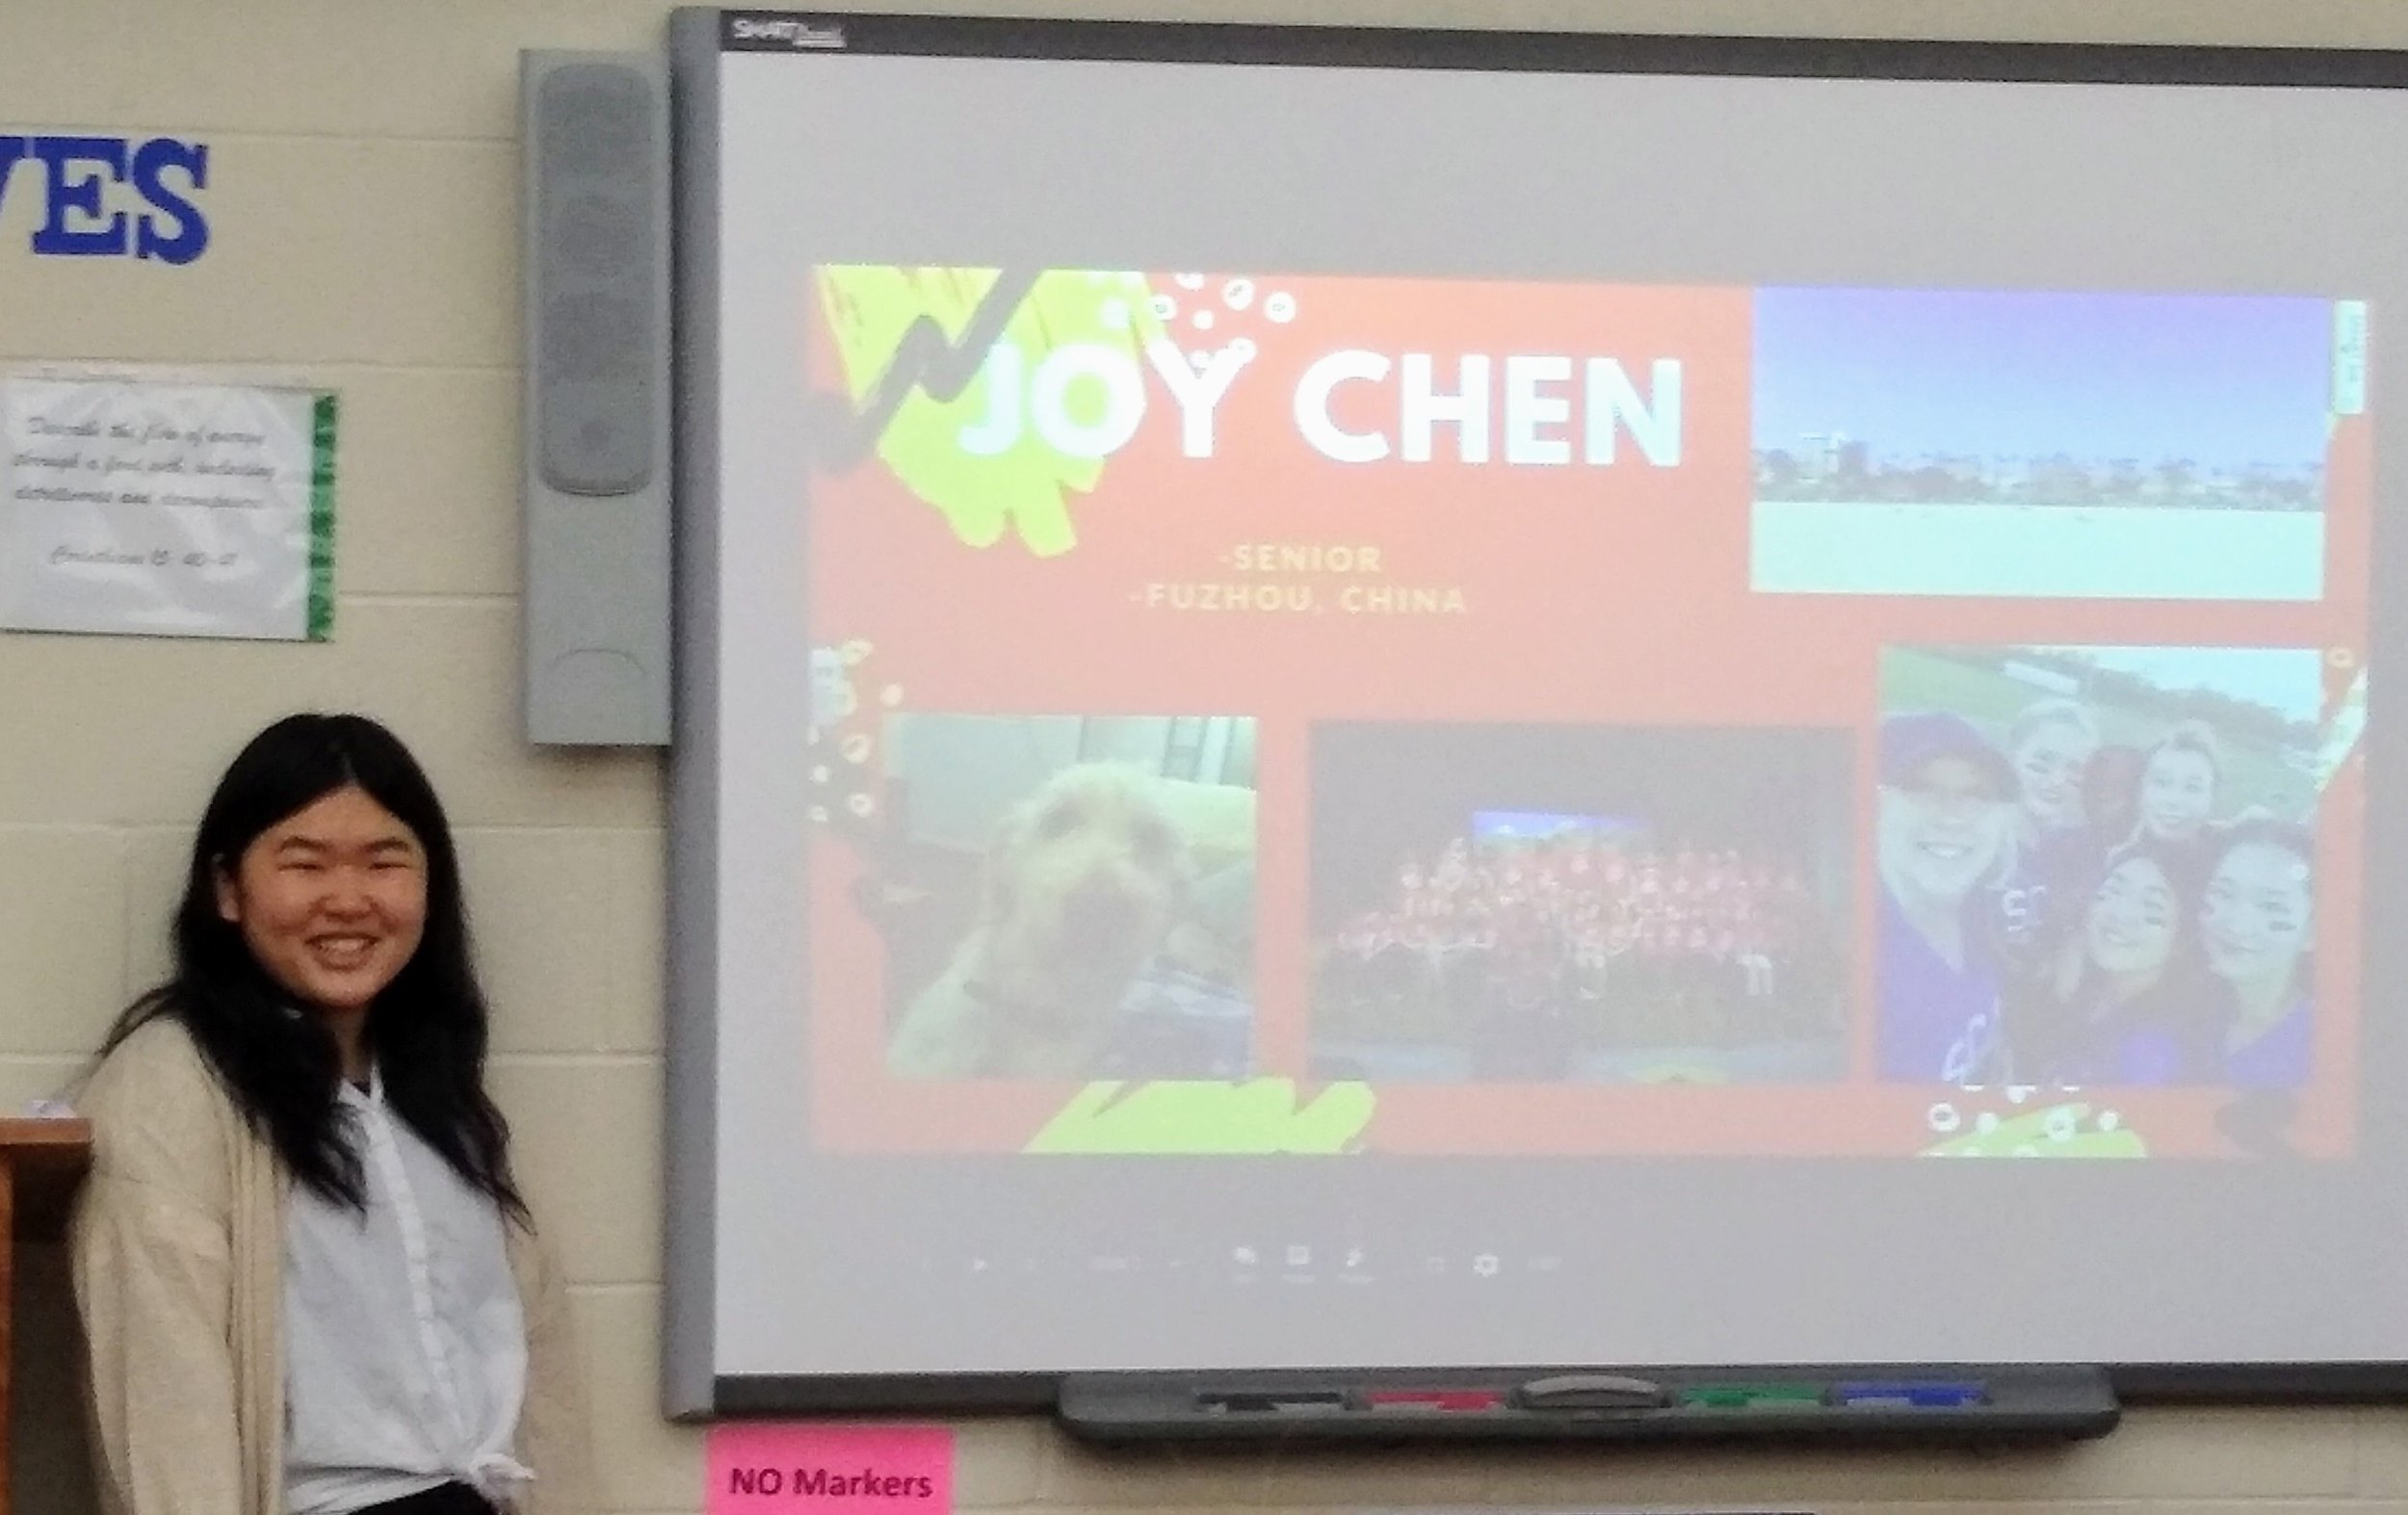 SCA Senior Jiayi (Joy) Chen from Fuzhou, China shares with SCA Secondary students about her home country.